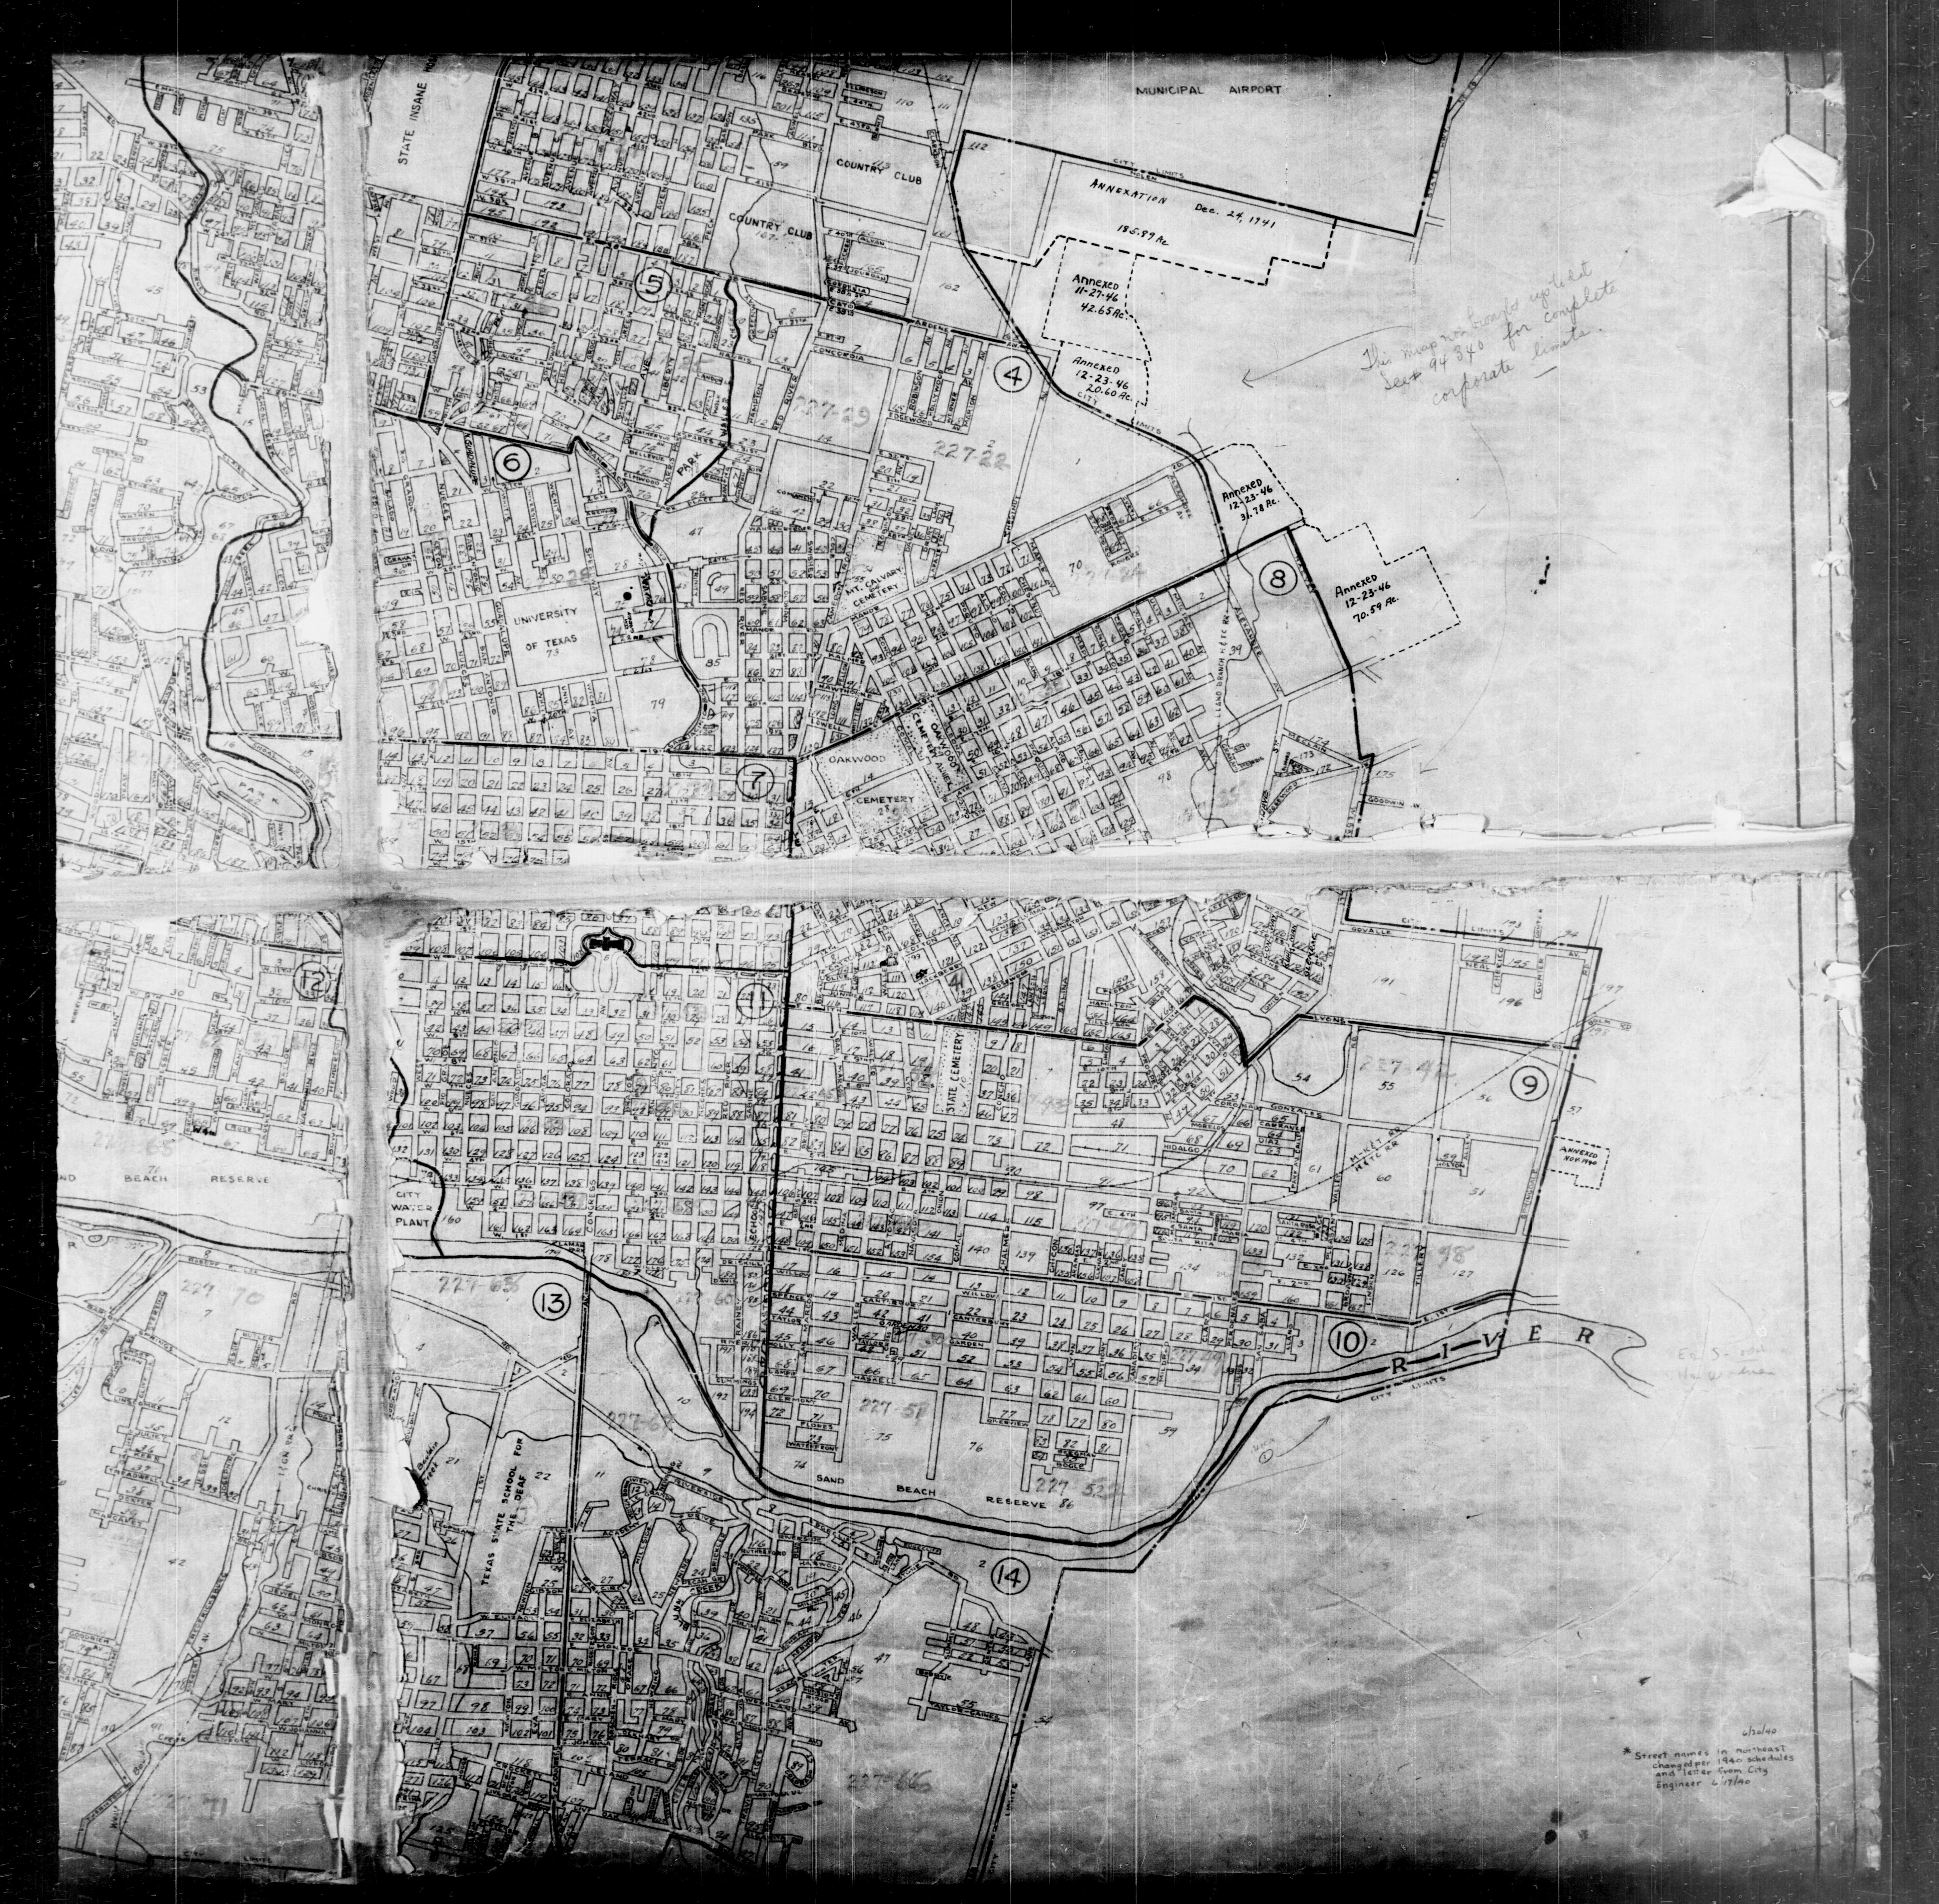 Historical: Texas Cities Historical Maps